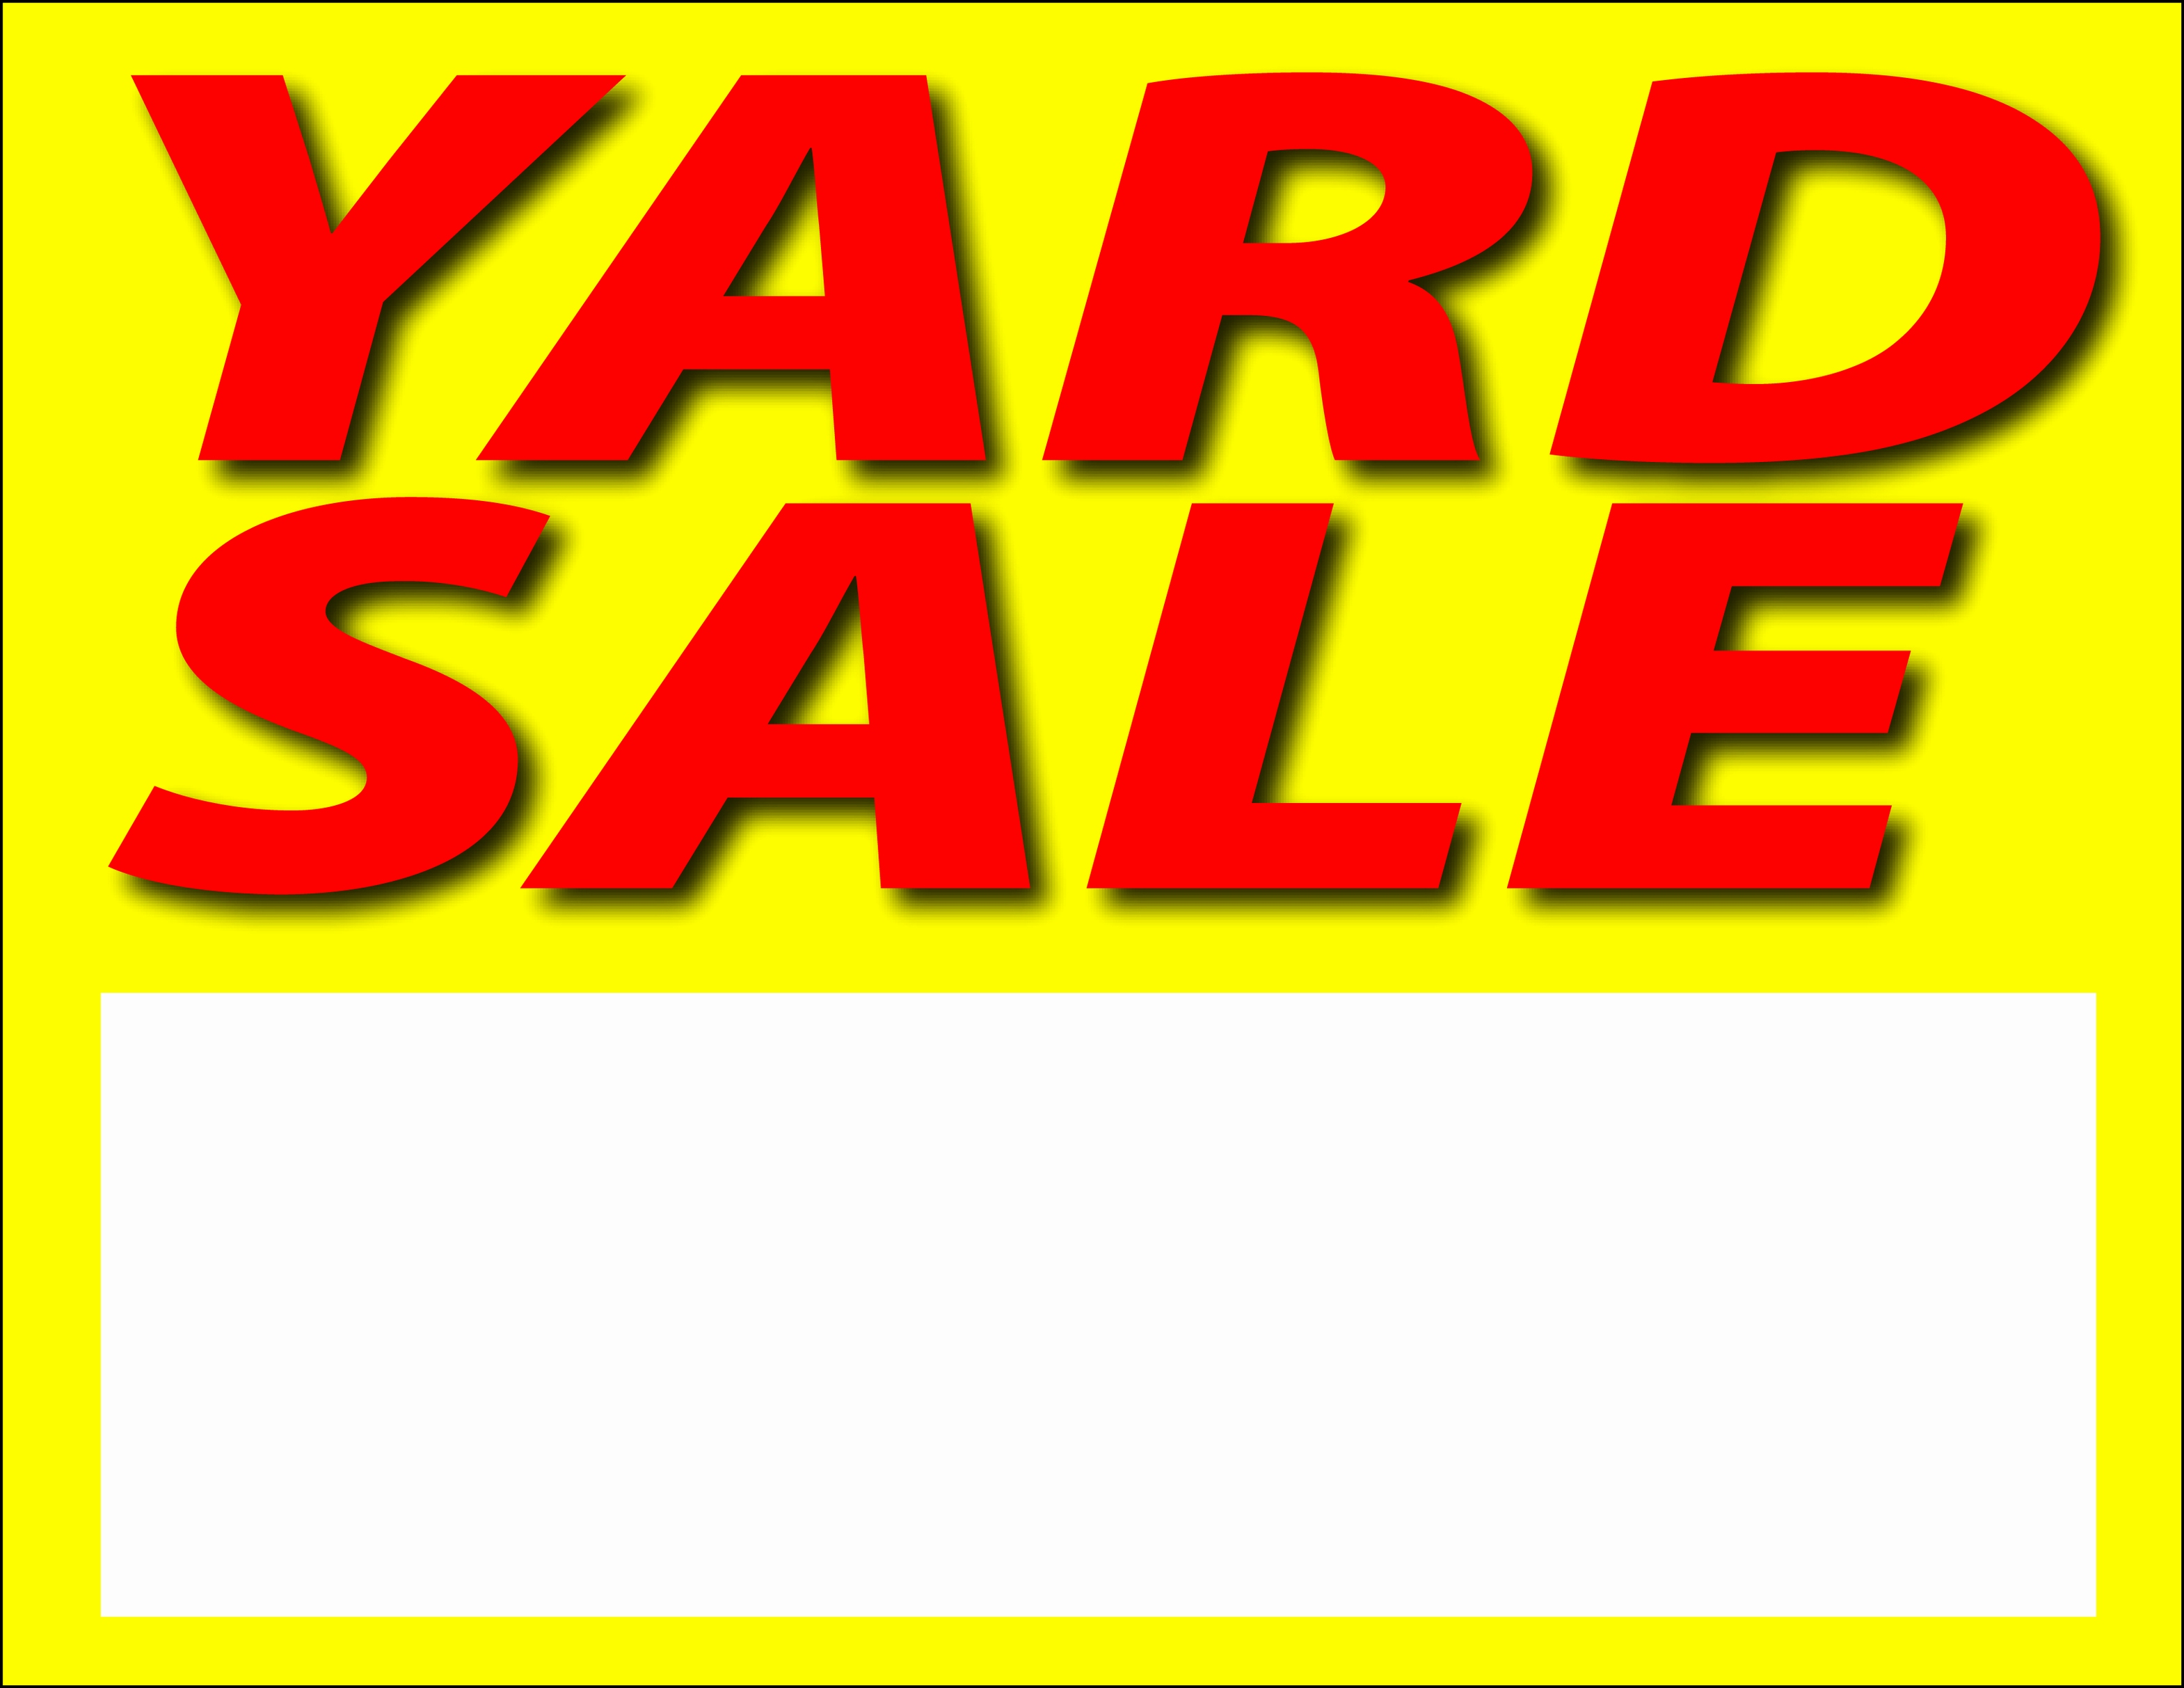 011 Template Ideas Garage Sale Sign Free Yard Flyer Unique For.